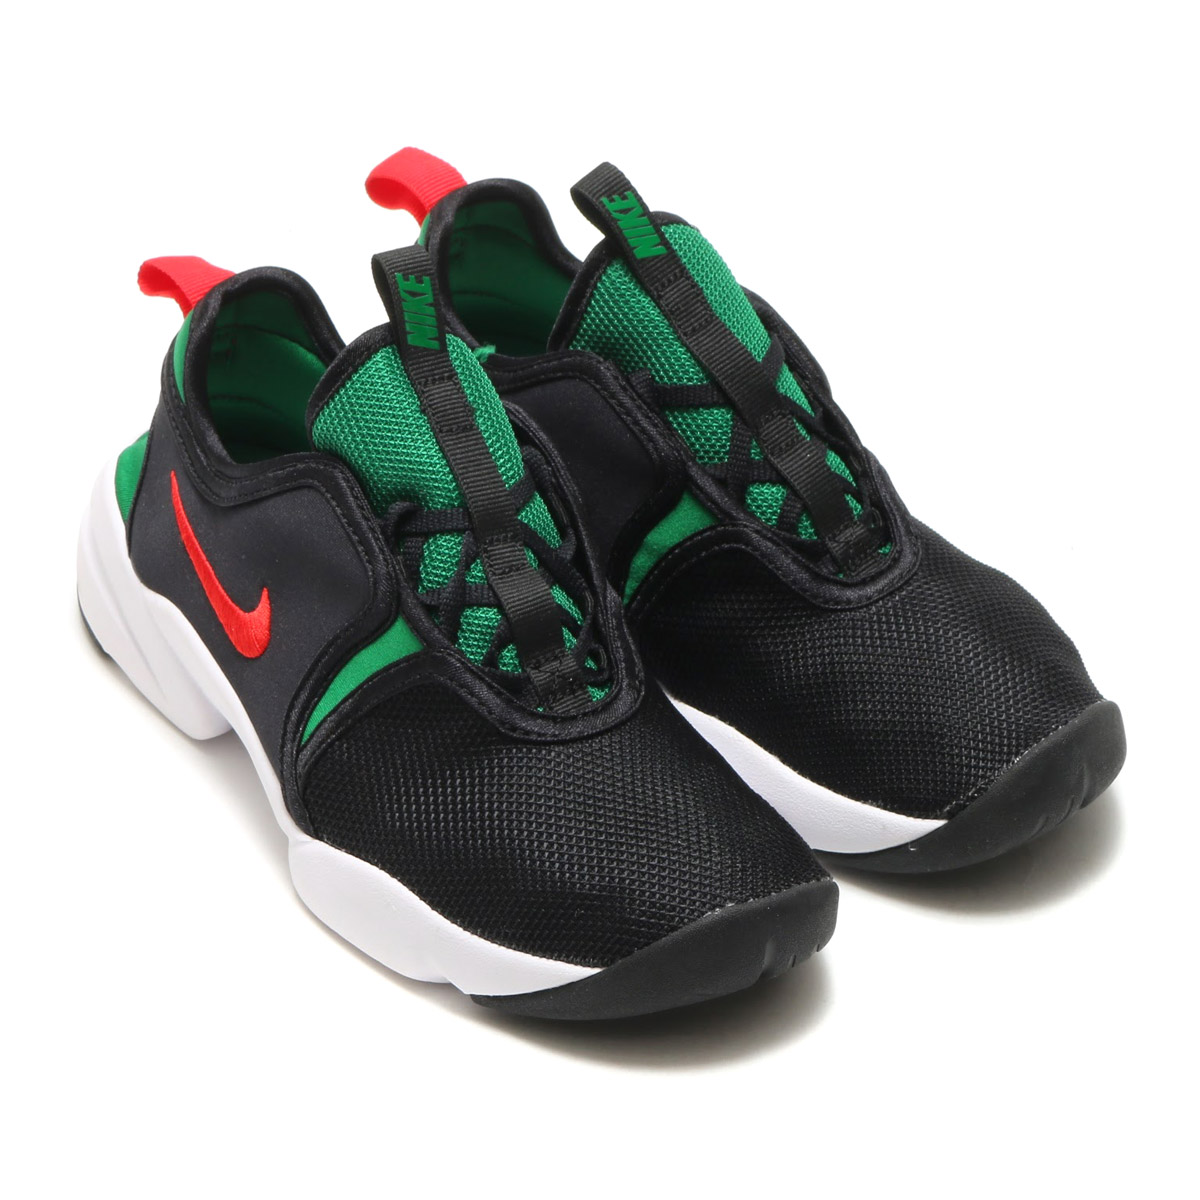 Using mesh and a neoprene material superior in breathability, the soft form  and rubber pod image Nike airlift shoes.